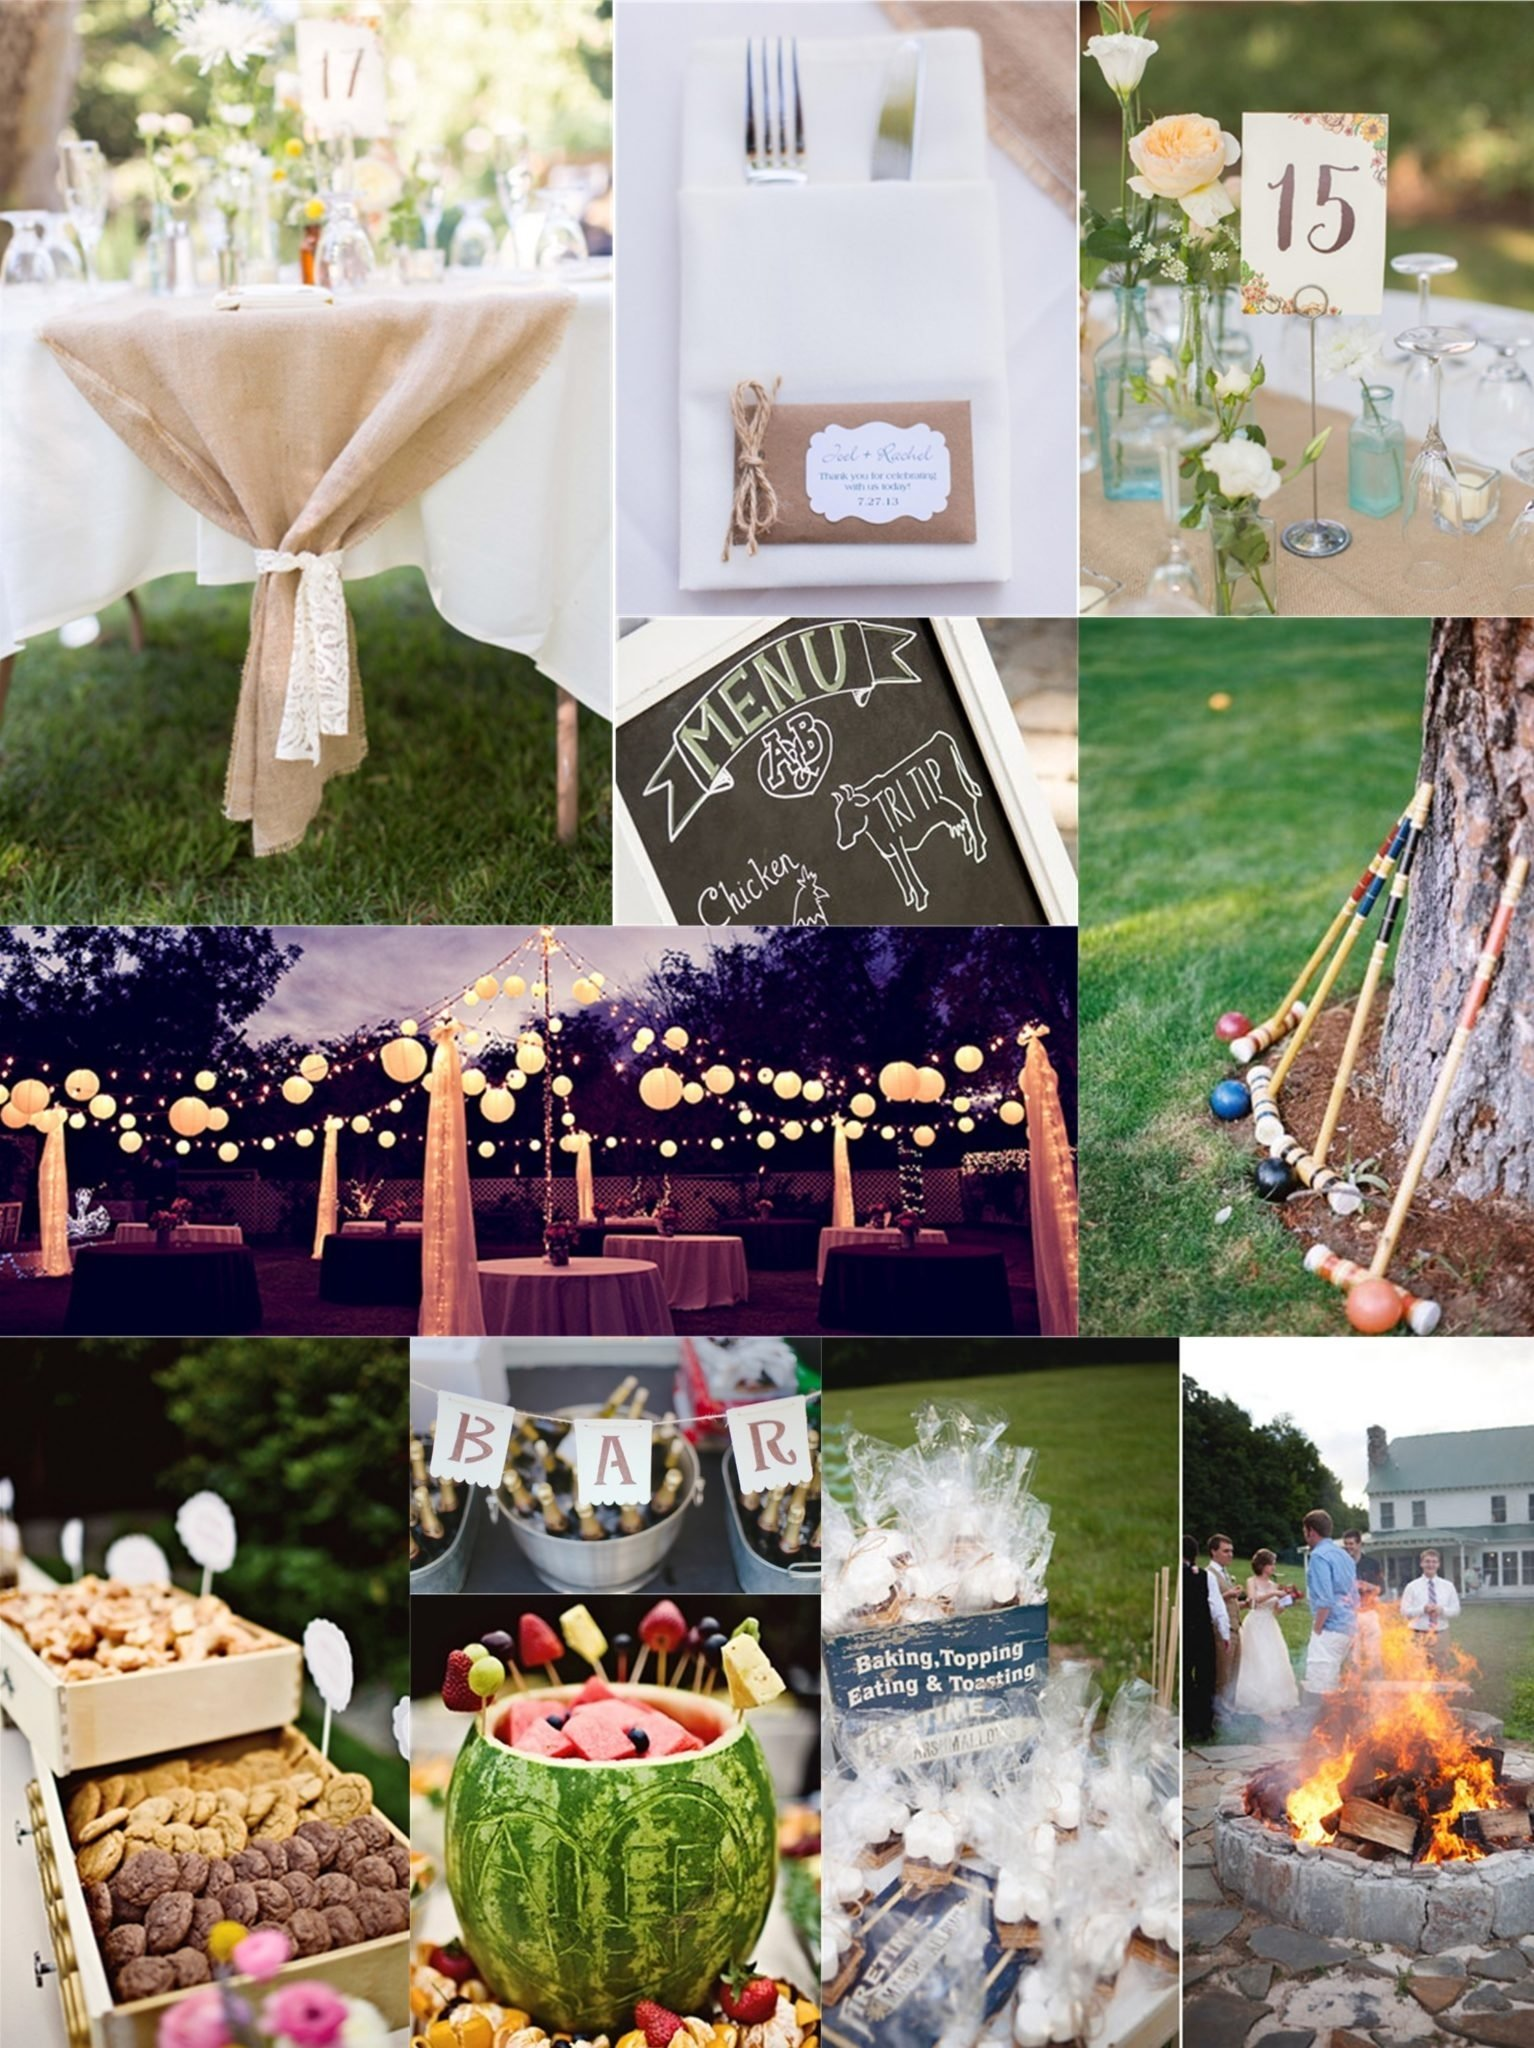 10 Cute Small Wedding Ideas On A Budget 2019 on Small Backyard Designs On A Budget id=77415